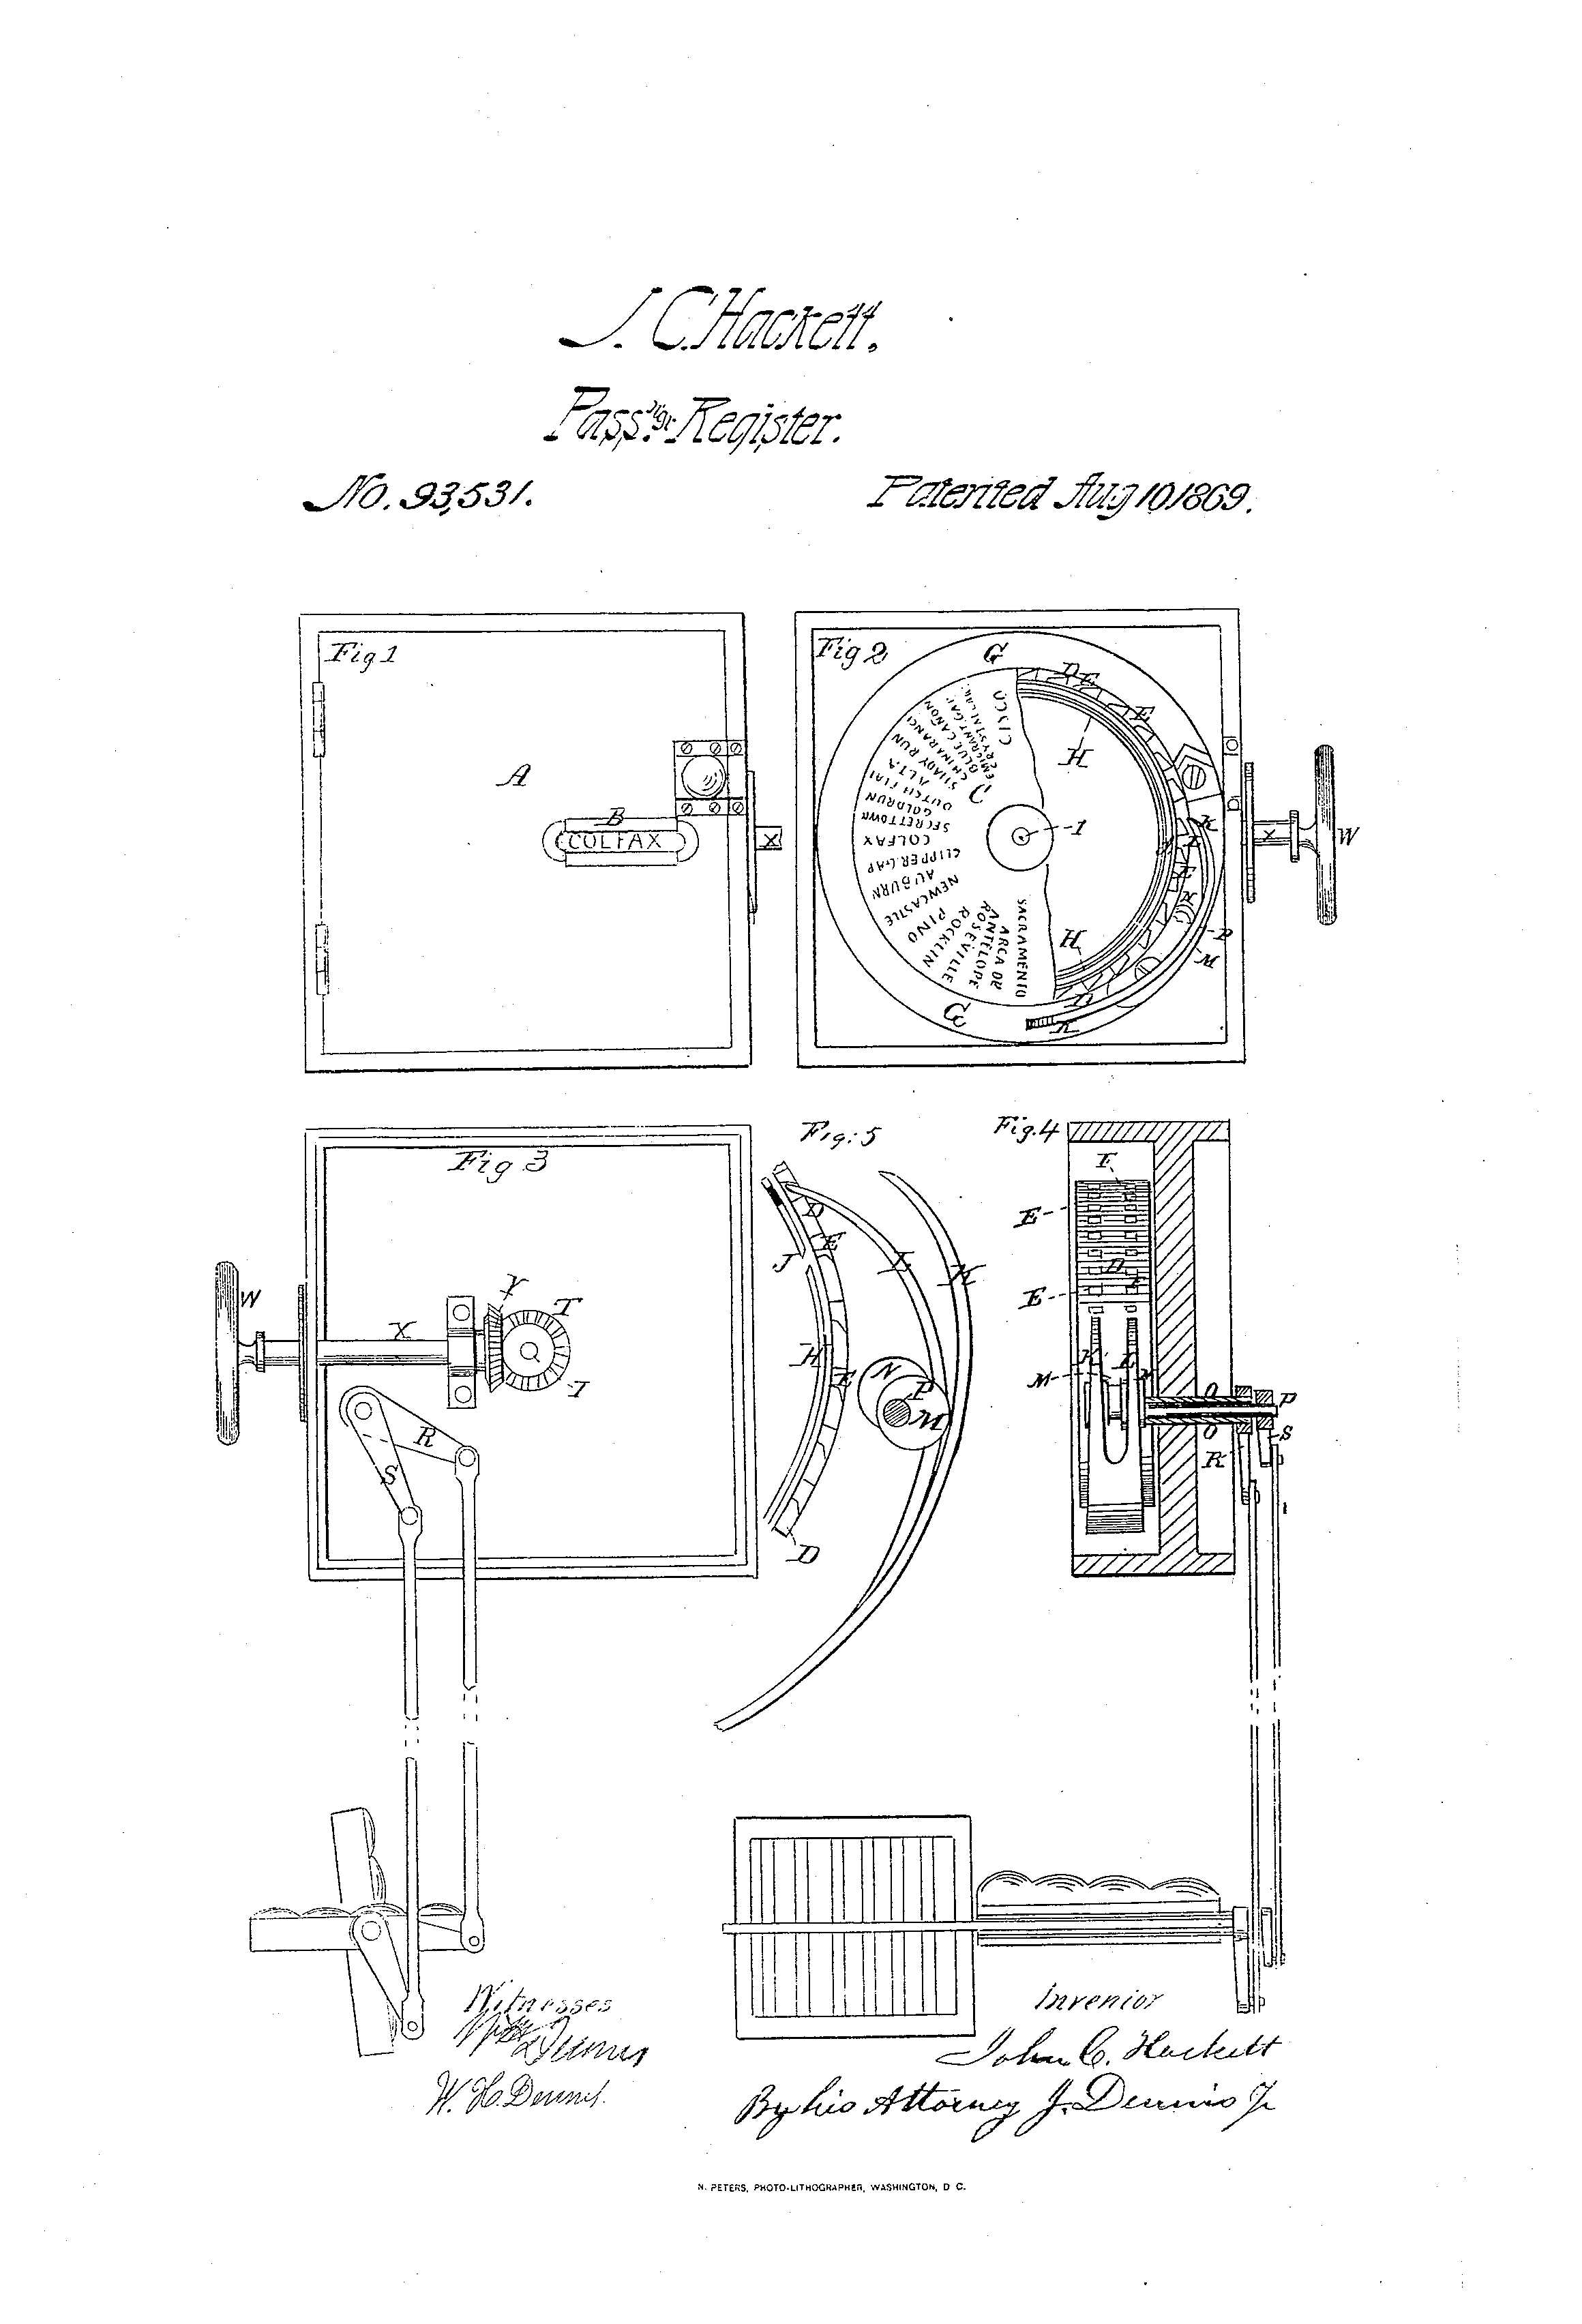 Pass & register, U.S. Patent #93531, August 10, 1869